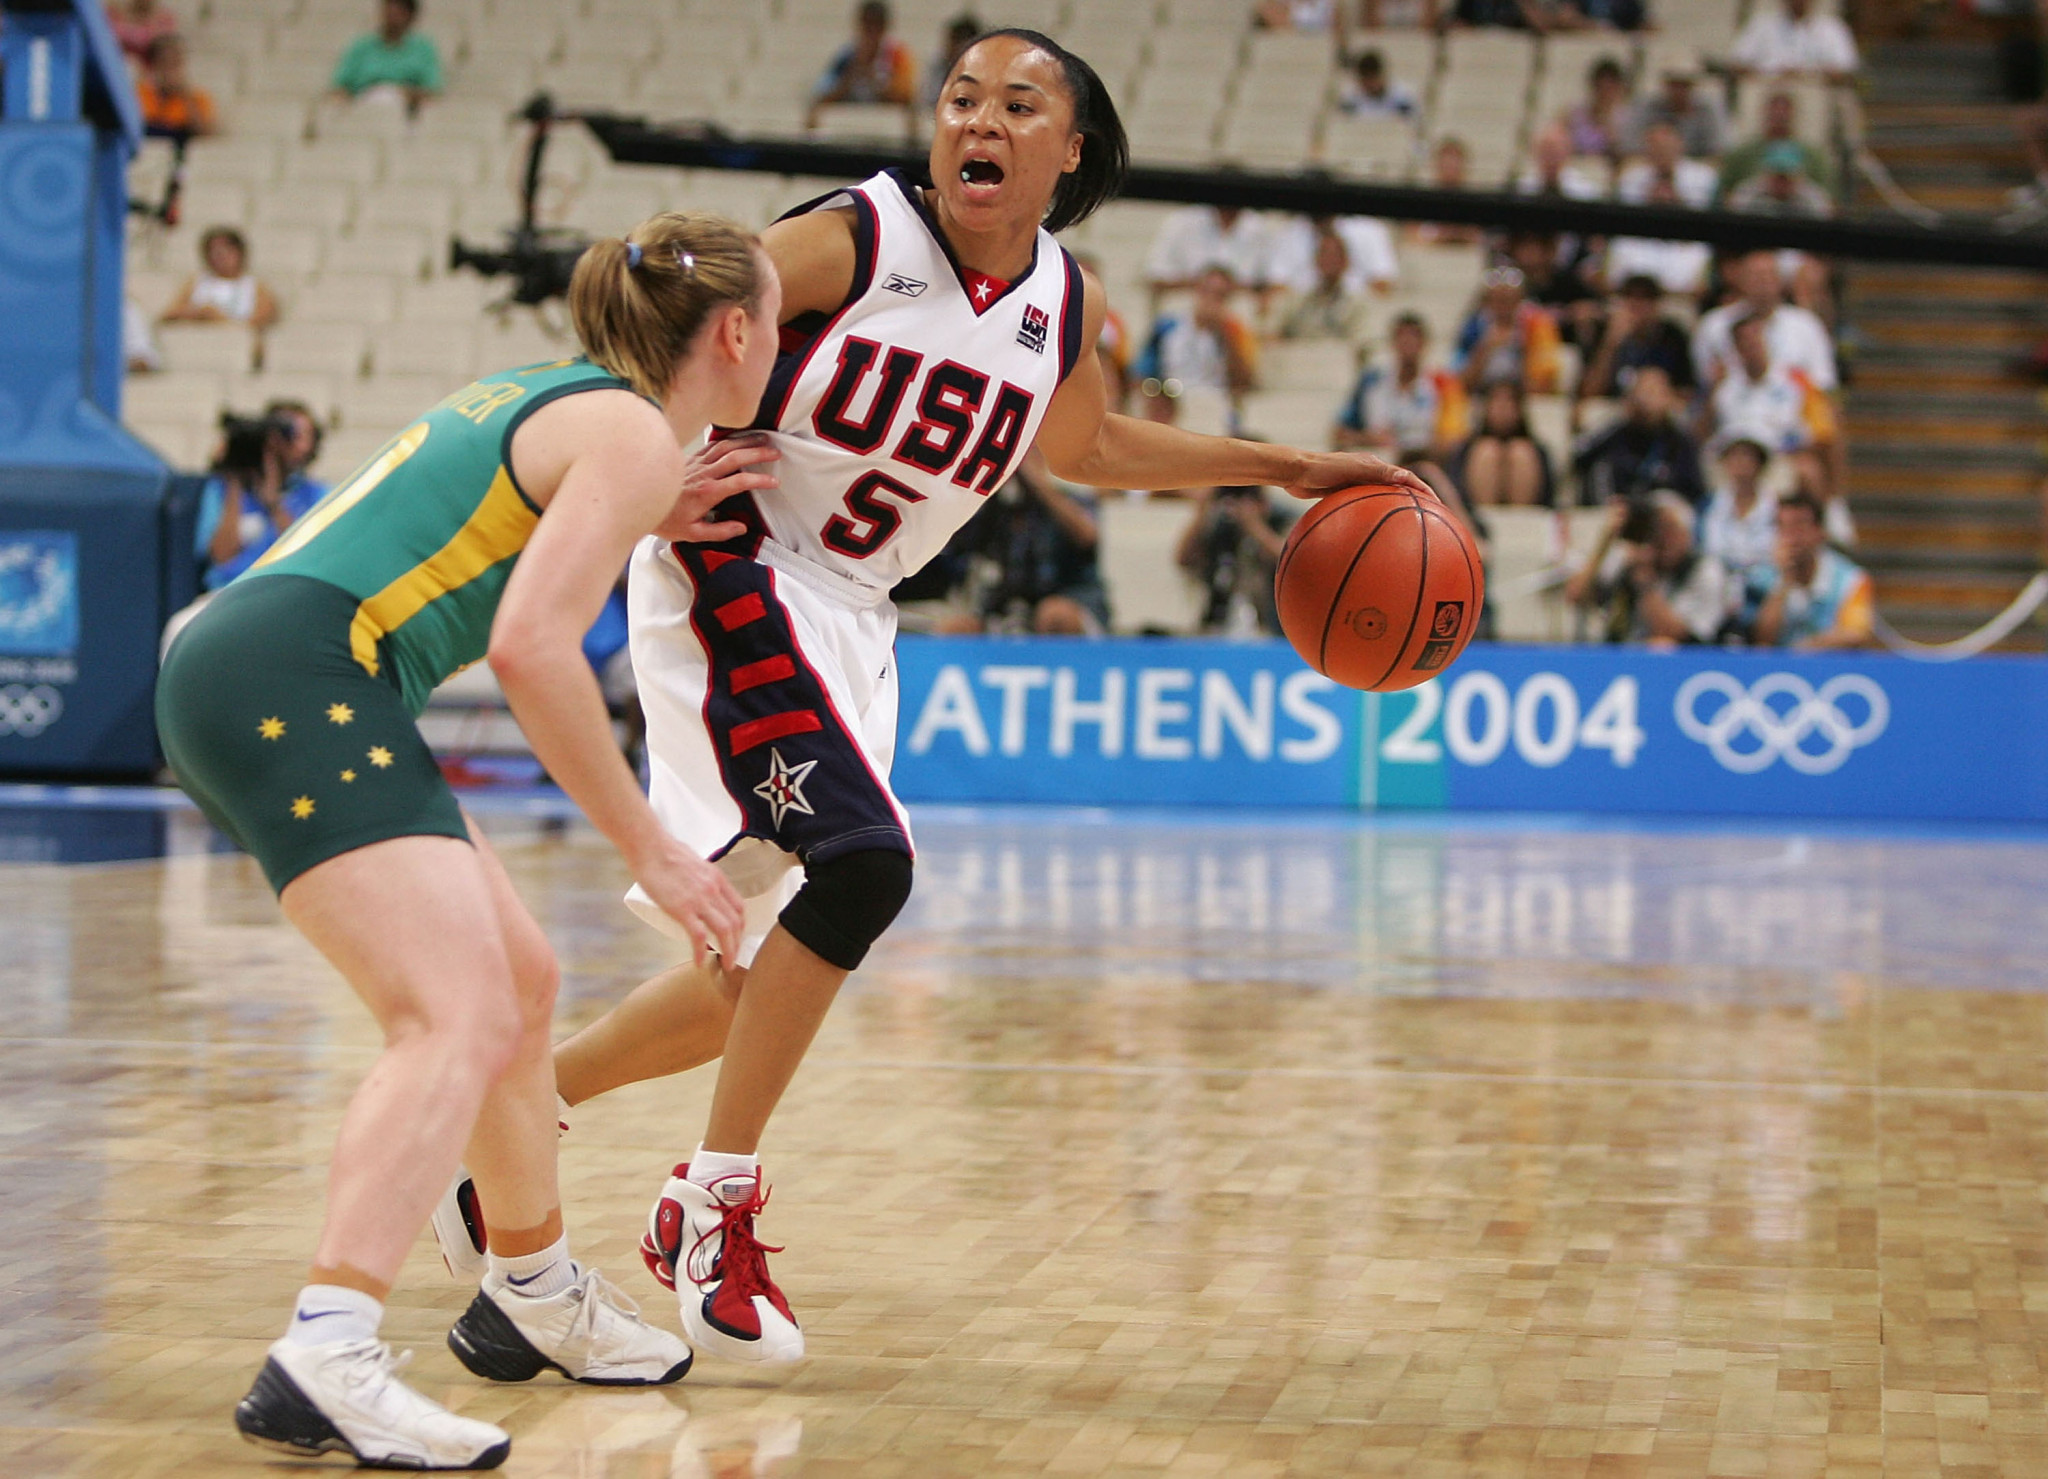 Dawn Staley won Olympic gold three times, including at Athens 2004 ©Getty Images